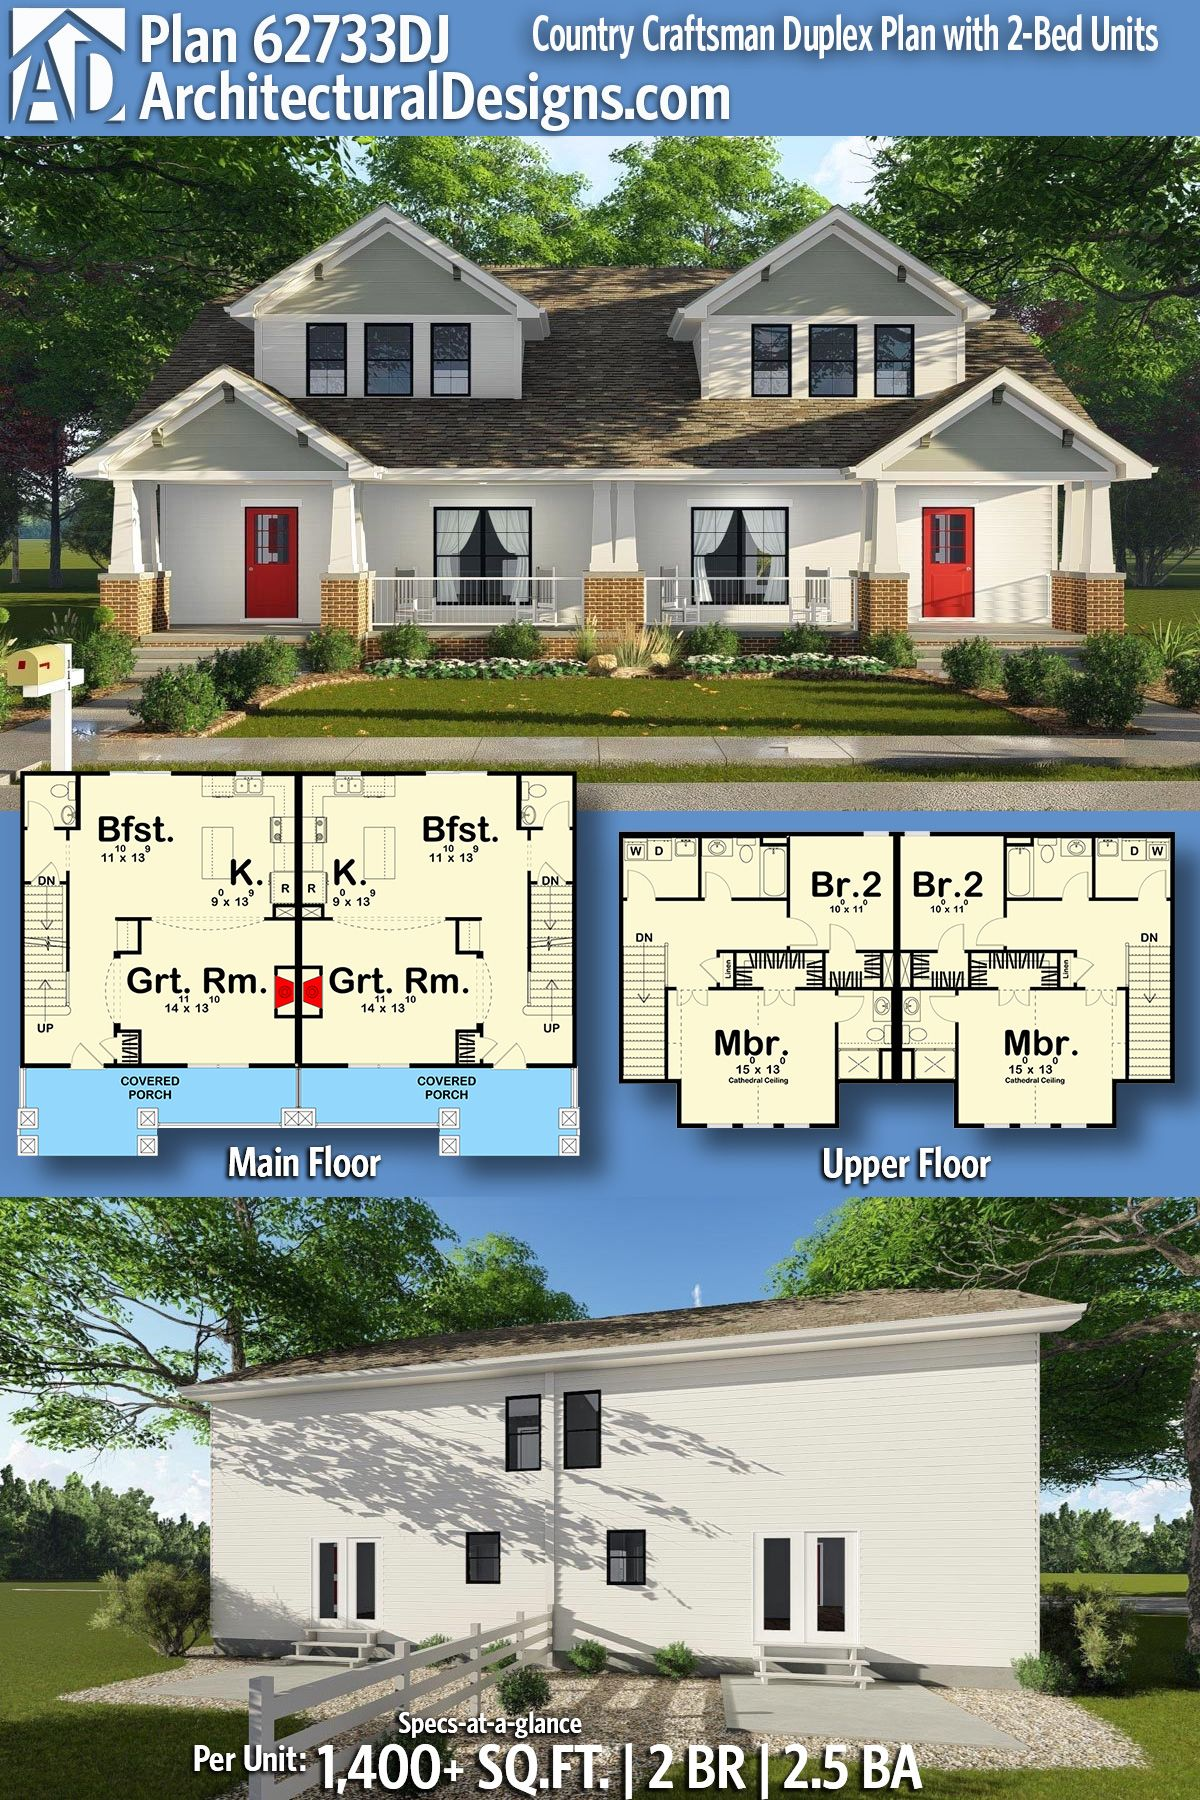 Multi Unit House Plans Plan 62733dj Country Craftsman Duplex Plan With 2 Bed Units In